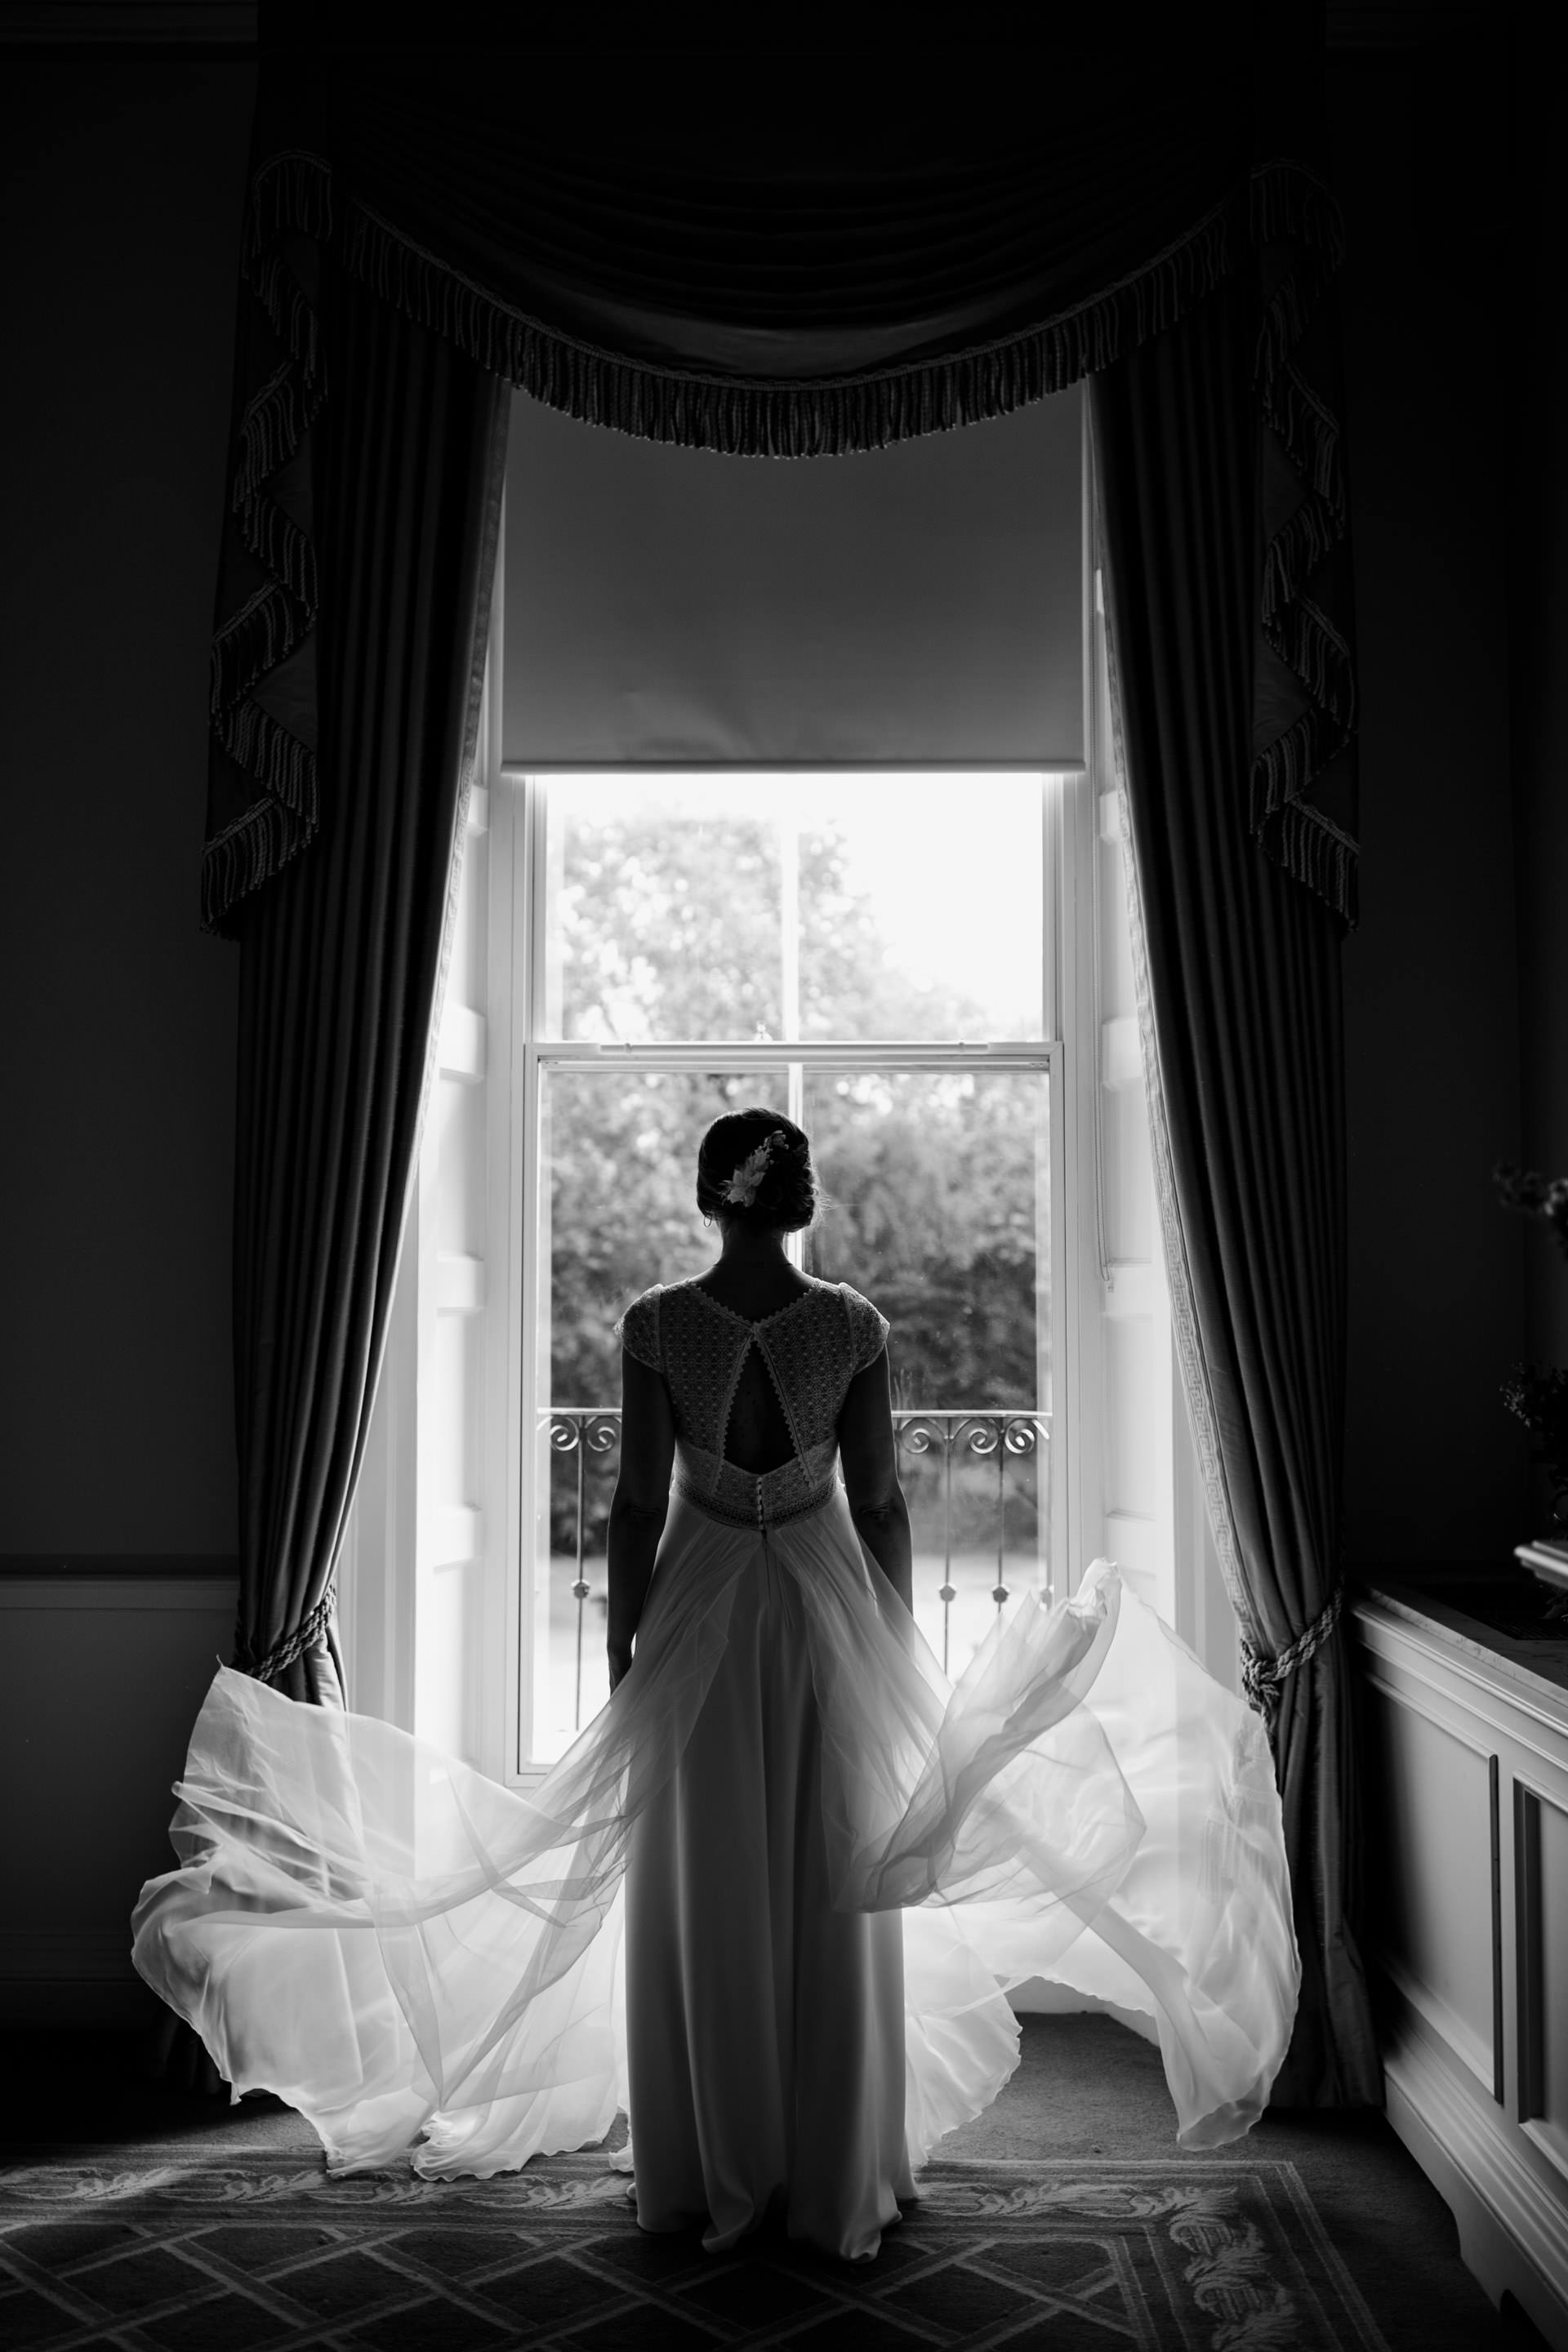 s&r_the_shelbourne_hotel_wedding_photographer_livia_figueiredo_11.jpg